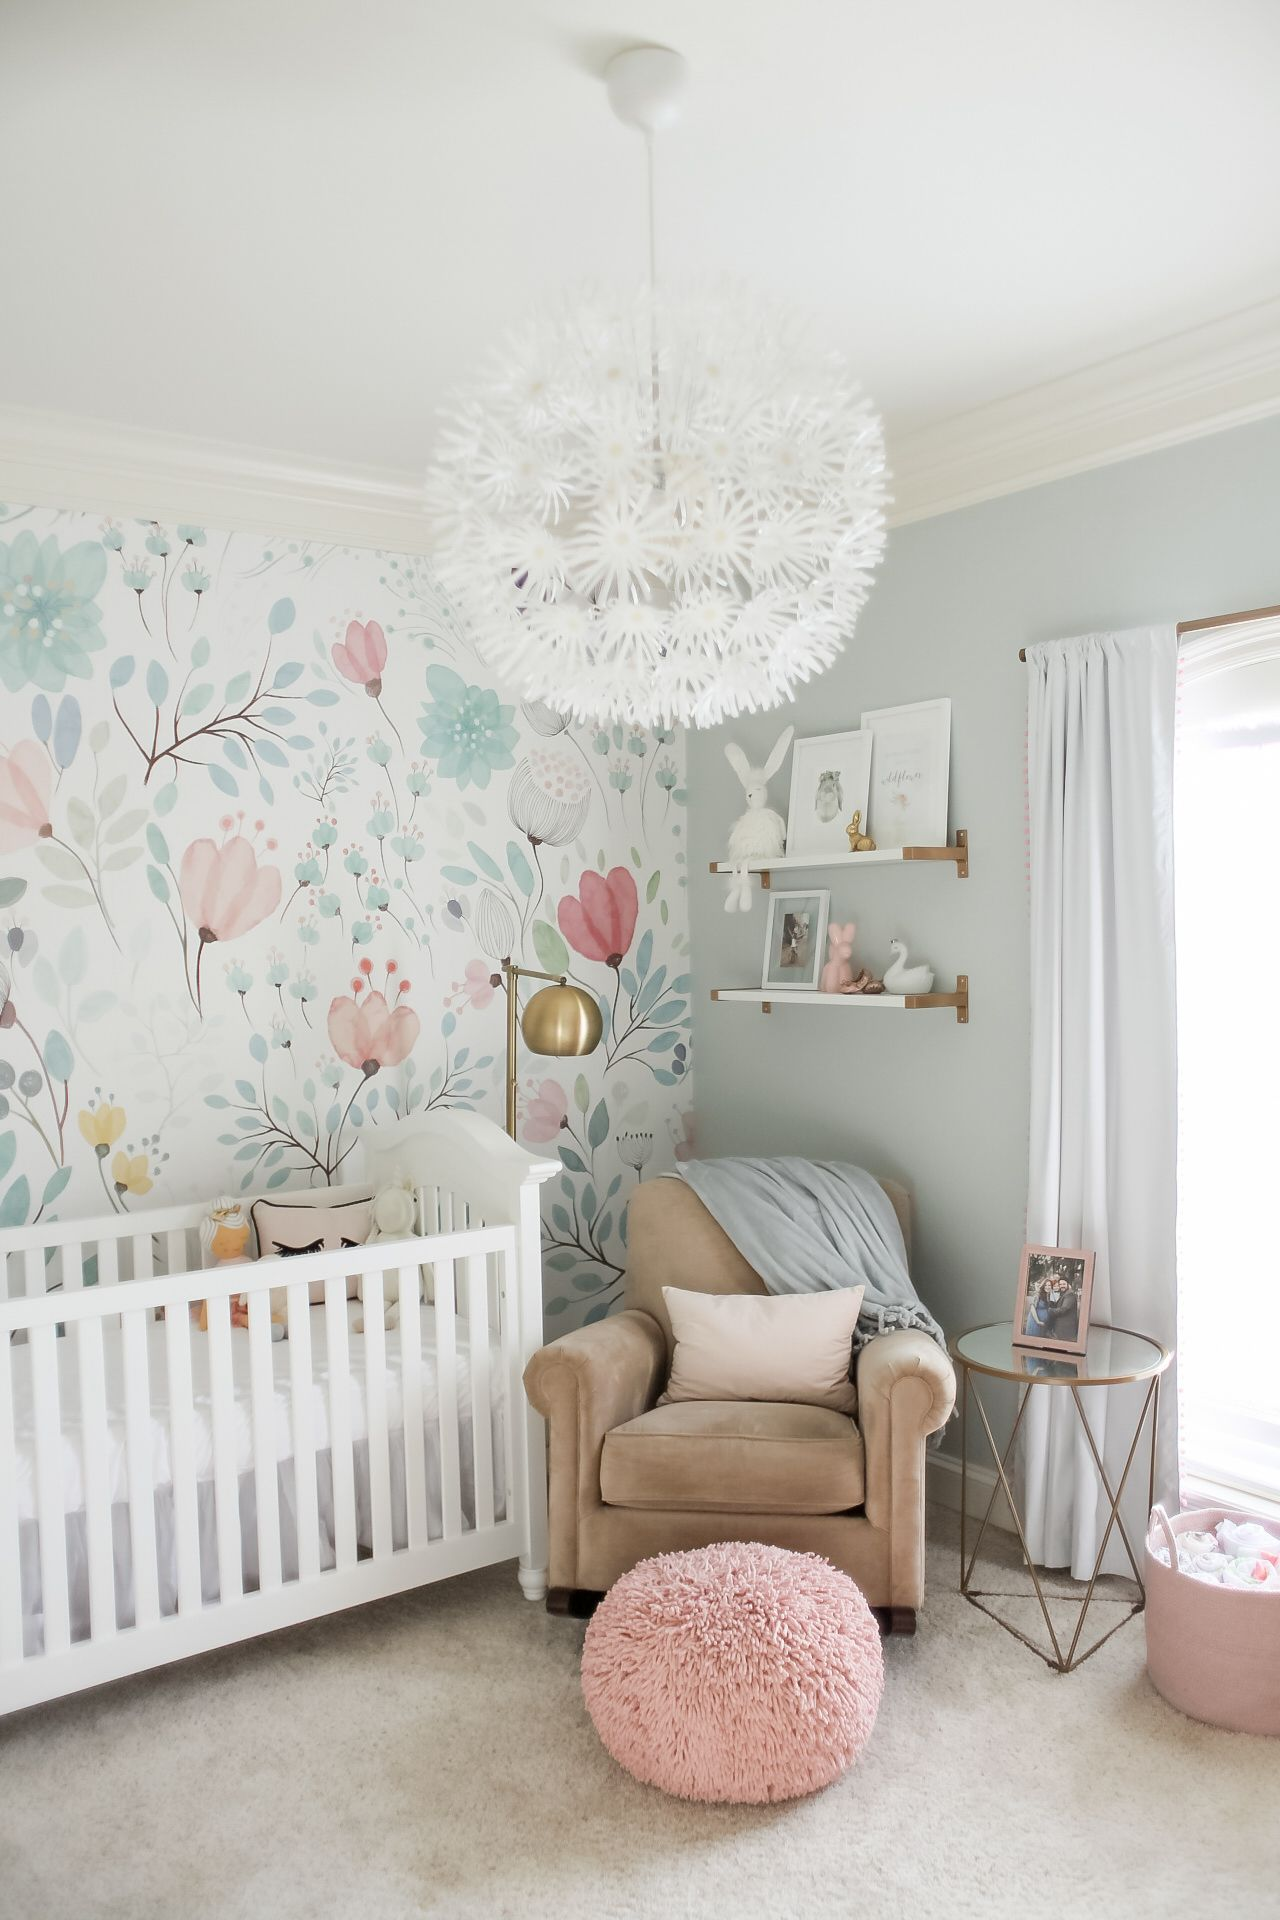 Best Bright And Whimsical Nursery For Colette Girl Room Whimsical Nursery Baby Decor 640 x 480